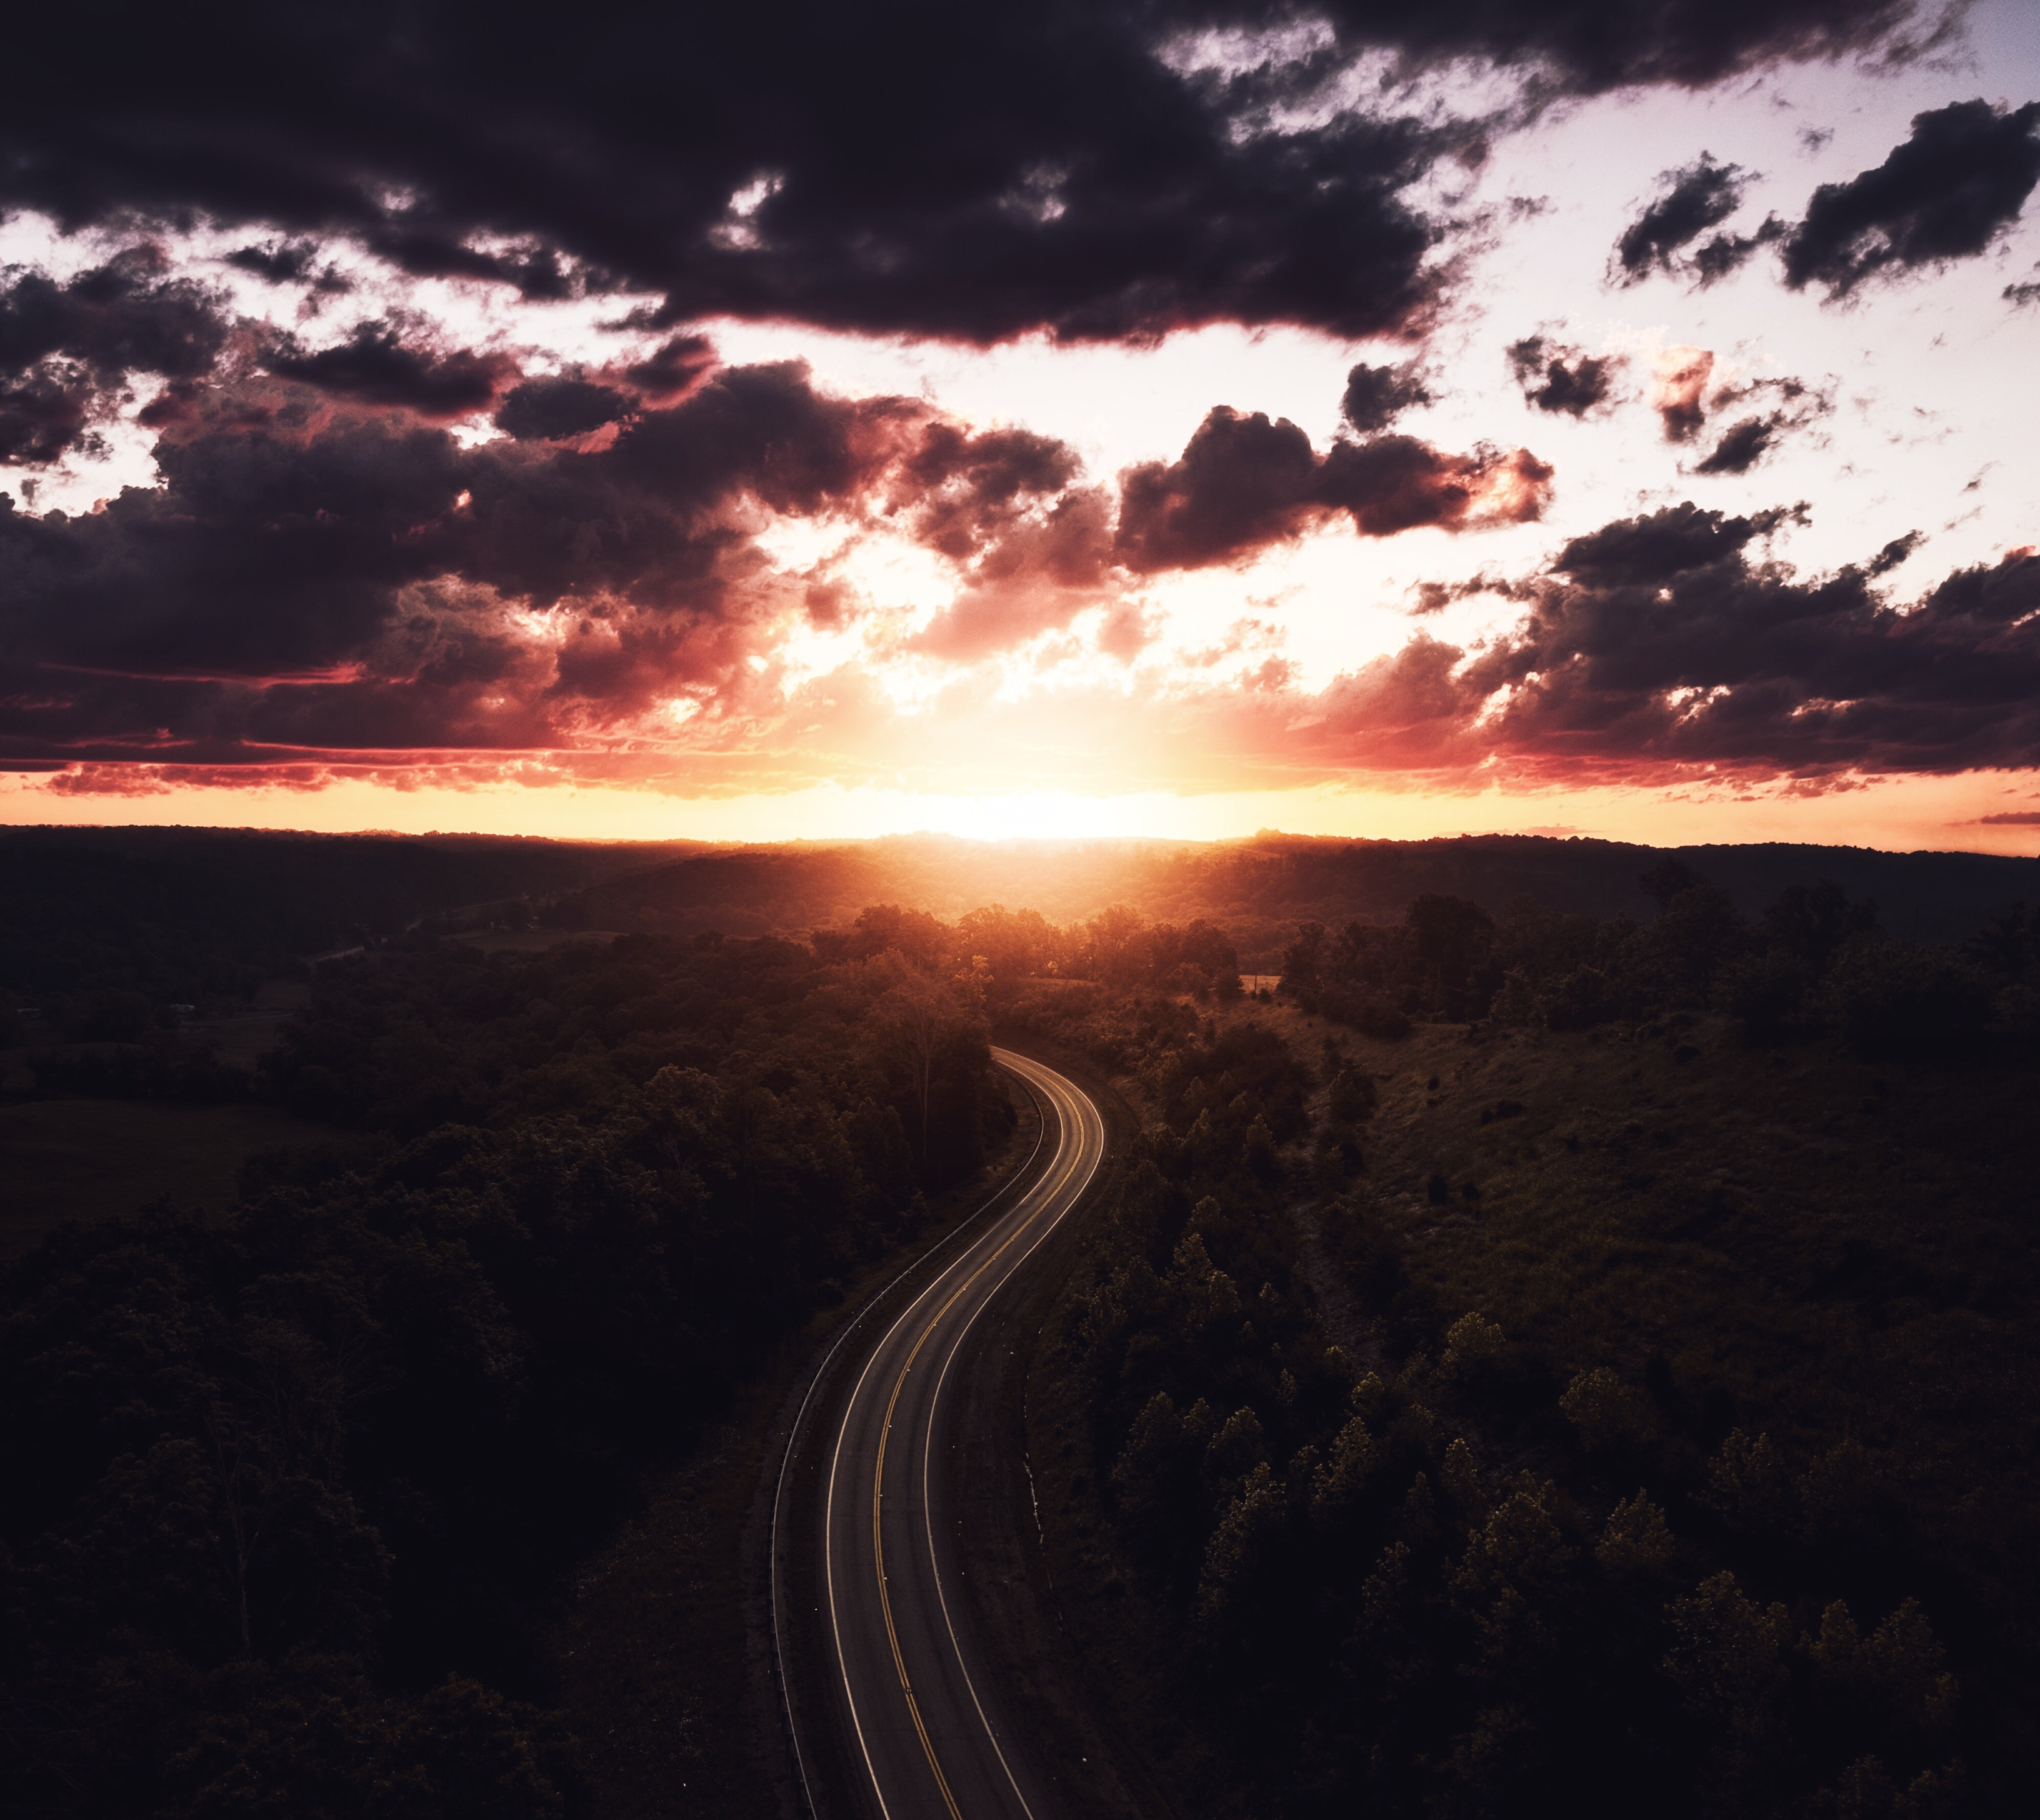 Sunset over a long, winding road.